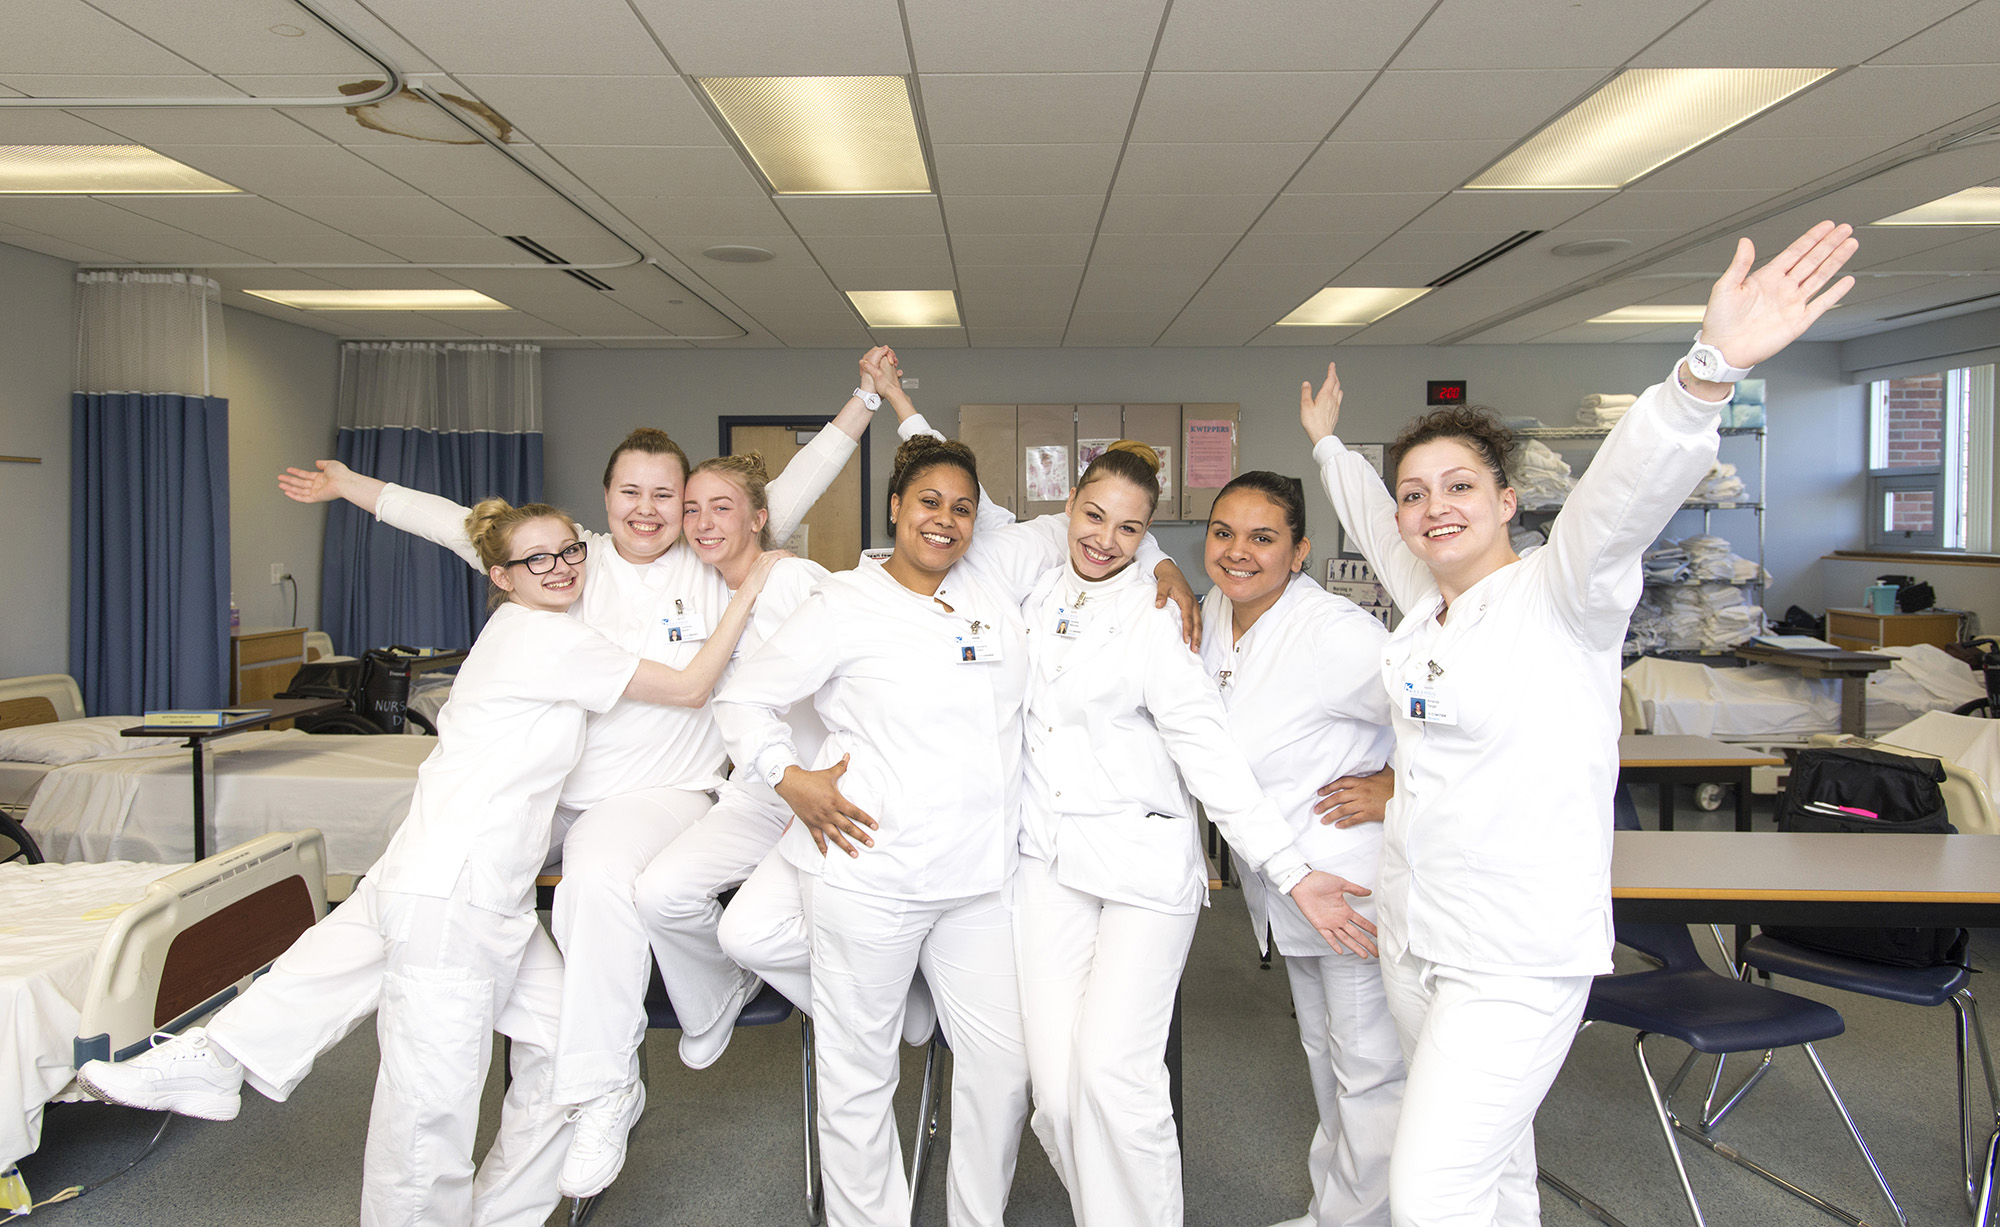 CNA students pose for a group photo in the CNA Lab on KCC's North Avenue campus in Battle Creek.